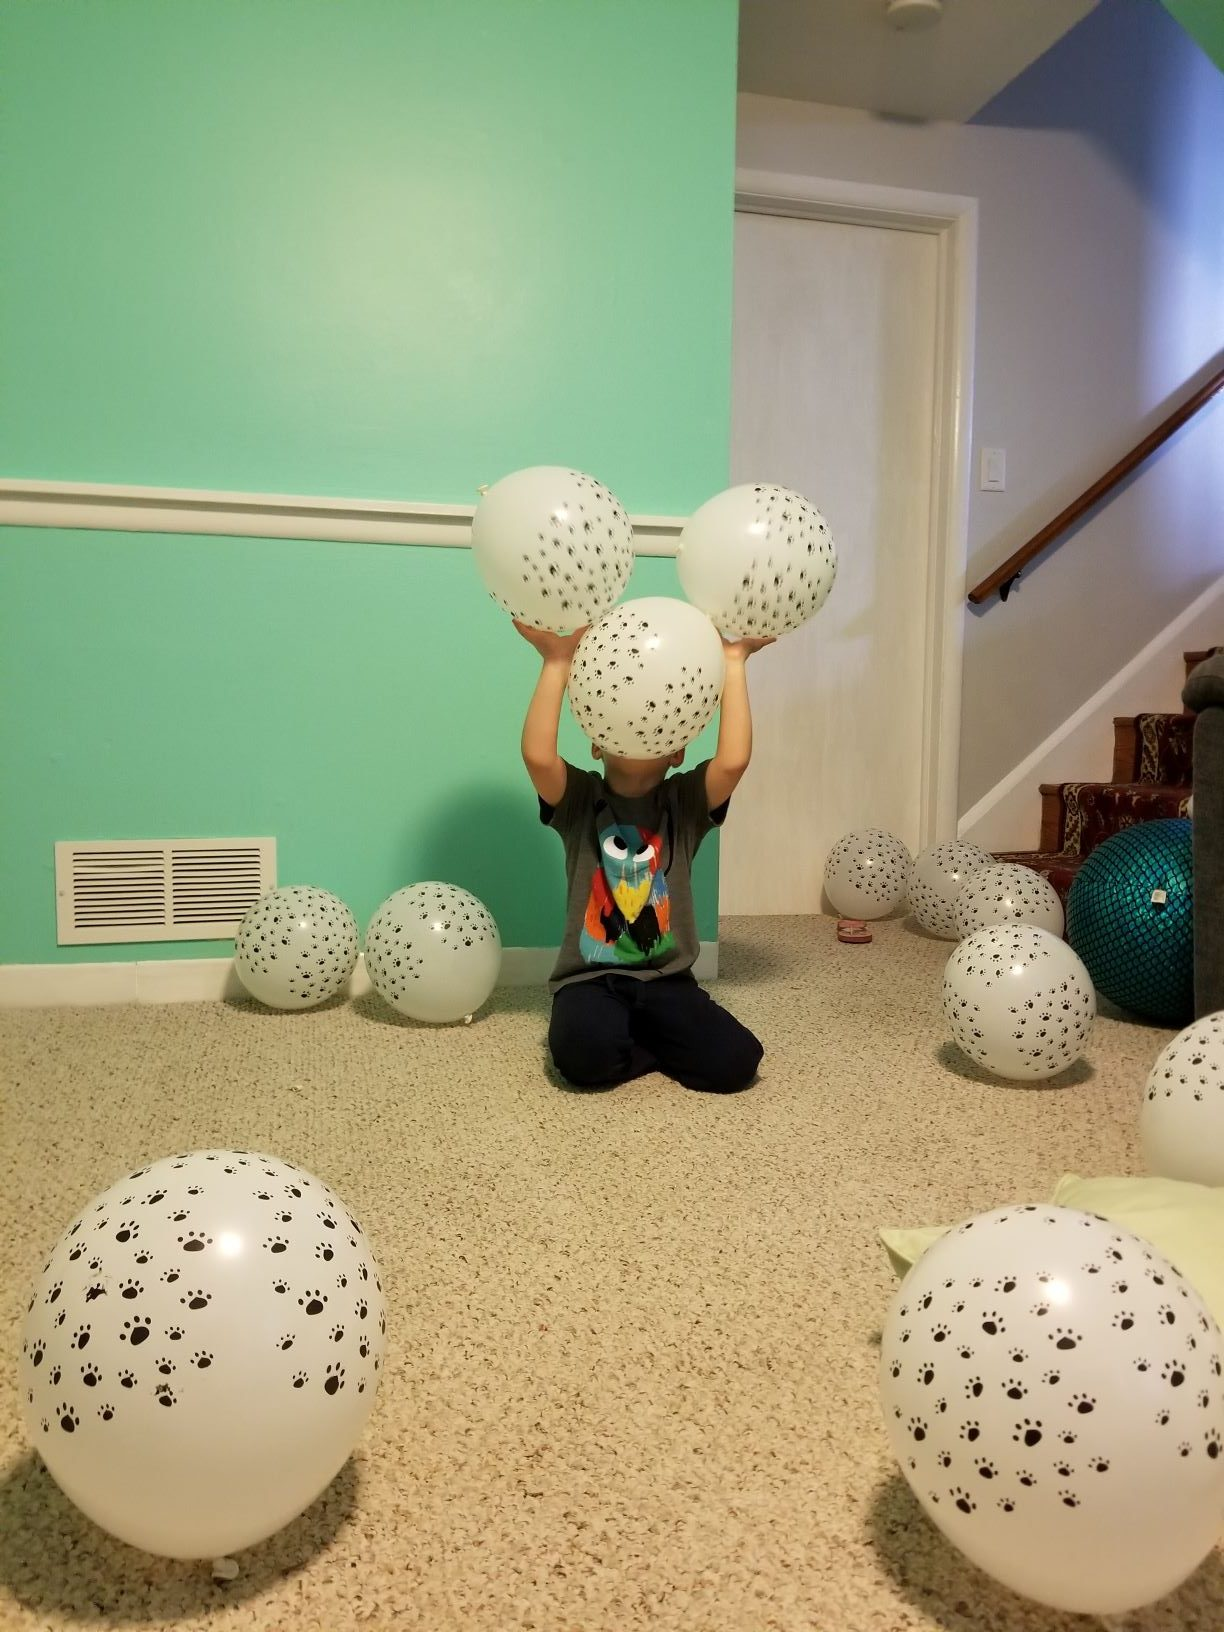 Juggling in Those Family Routines